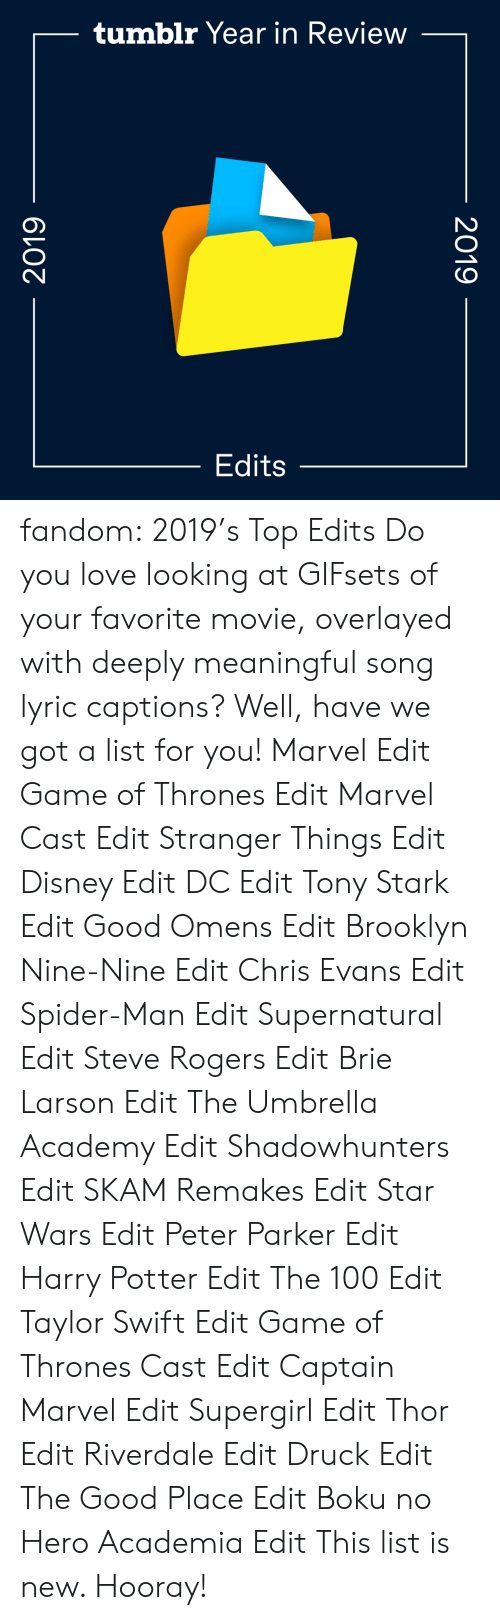 steve: tumblr Year in Review  Edits  2019  2019 fandom:  2019's Top Edits  Do you love looking at GIFsets of your favorite movie, overlayed with deeply meaningful song lyric captions? Well, have we got a list for you!  Marvel Edit  Game of Thrones Edit  Marvel Cast Edit  Stranger Things Edit  Disney Edit  DC Edit  Tony Stark Edit  Good Omens Edit  Brooklyn Nine-Nine Edit  Chris Evans Edit  Spider-Man Edit  Supernatural Edit  Steve Rogers Edit  Brie Larson Edit  The Umbrella Academy Edit  Shadowhunters Edit  SKAM Remakes Edit  Star Wars Edit  Peter Parker Edit  Harry Potter Edit  The 100 Edit  Taylor Swift Edit  Game of Thrones Cast Edit  Captain Marvel Edit  Supergirl Edit  Thor Edit  Riverdale Edit  Druck Edit  The Good Place Edit  Boku no Hero Academia Edit This list is new. Hooray!